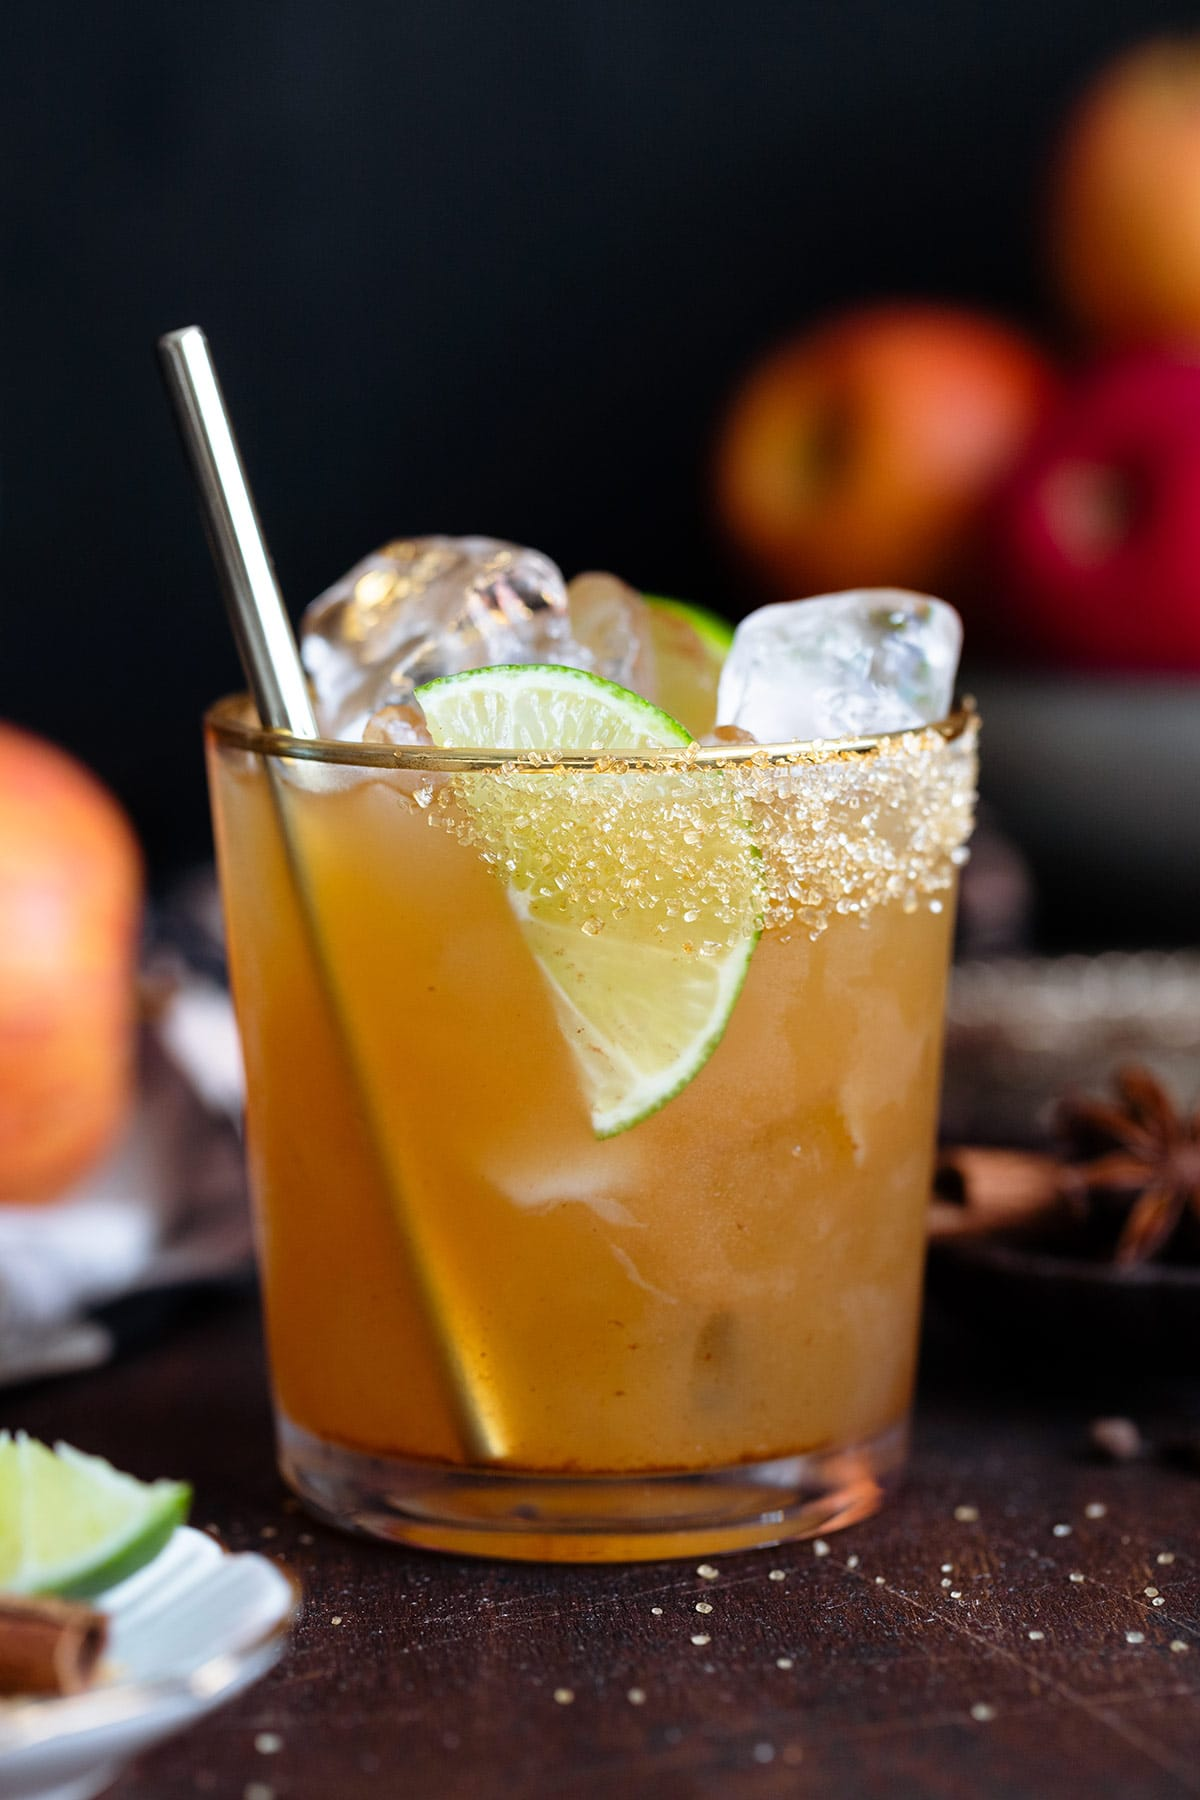 A cocktail in a short glass with a gold rim garnished with a lime slice on a dark wooden background.